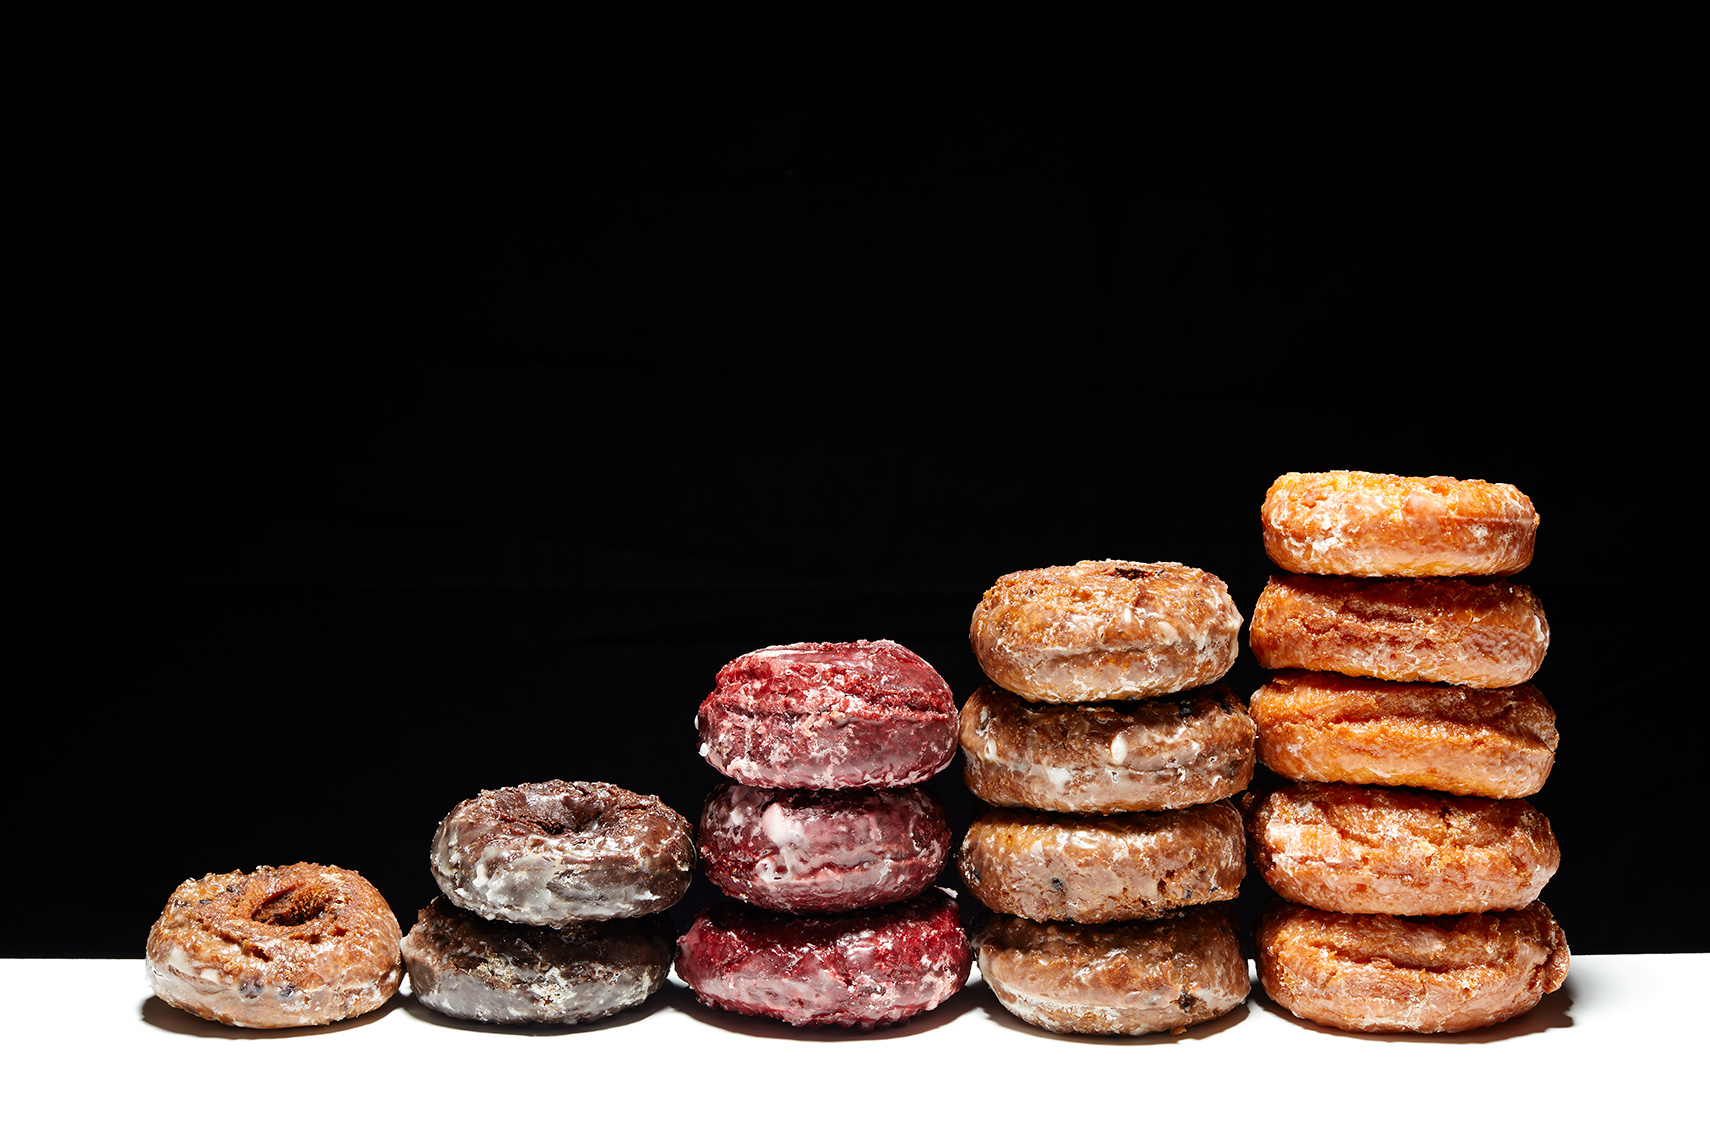 DONUTS-092820_01_0118